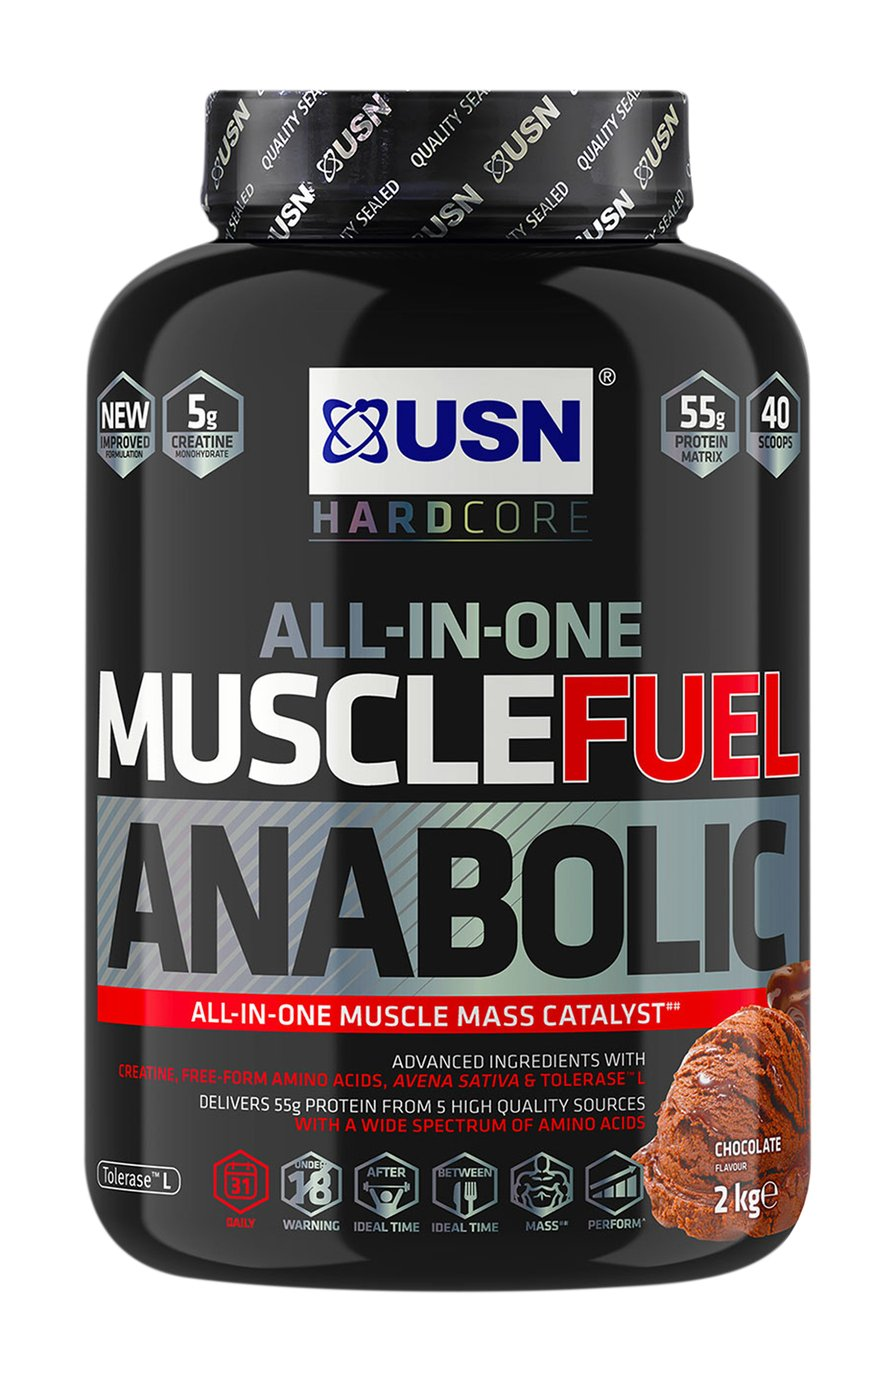 USN 2kg Muscle Fuel Anabolic Protein Shake